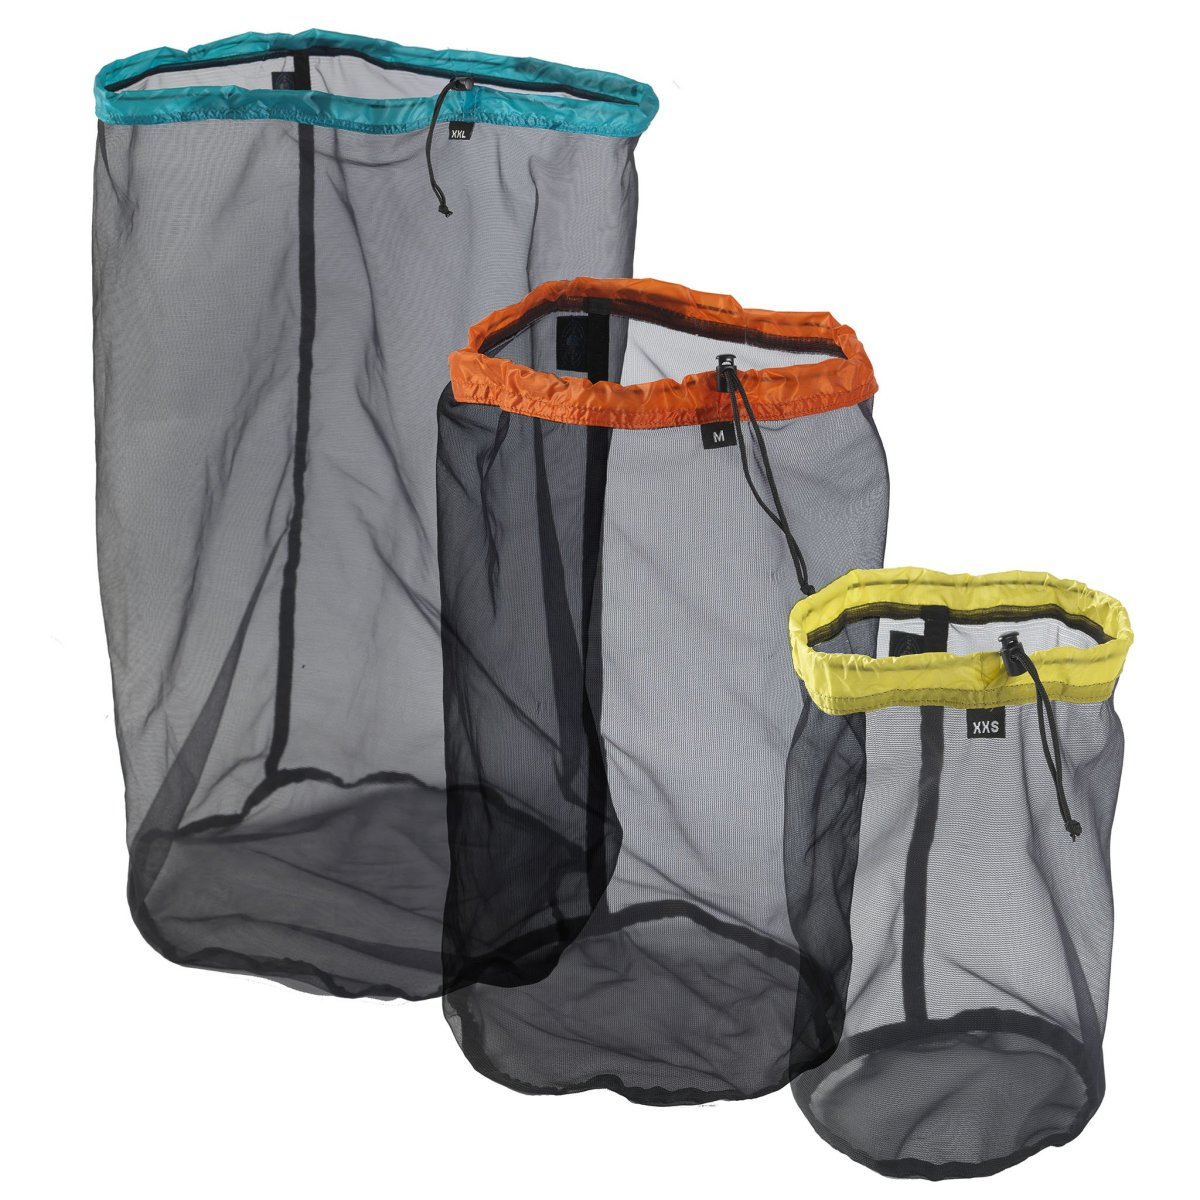 Чехол Sea to summit Ultra-Mesh Stuff Sack Midnight, XS Чехол1 Sea to summit Ultra-Mesh Stuff Sack Midnight, XS 1 STS AUMSSLLI